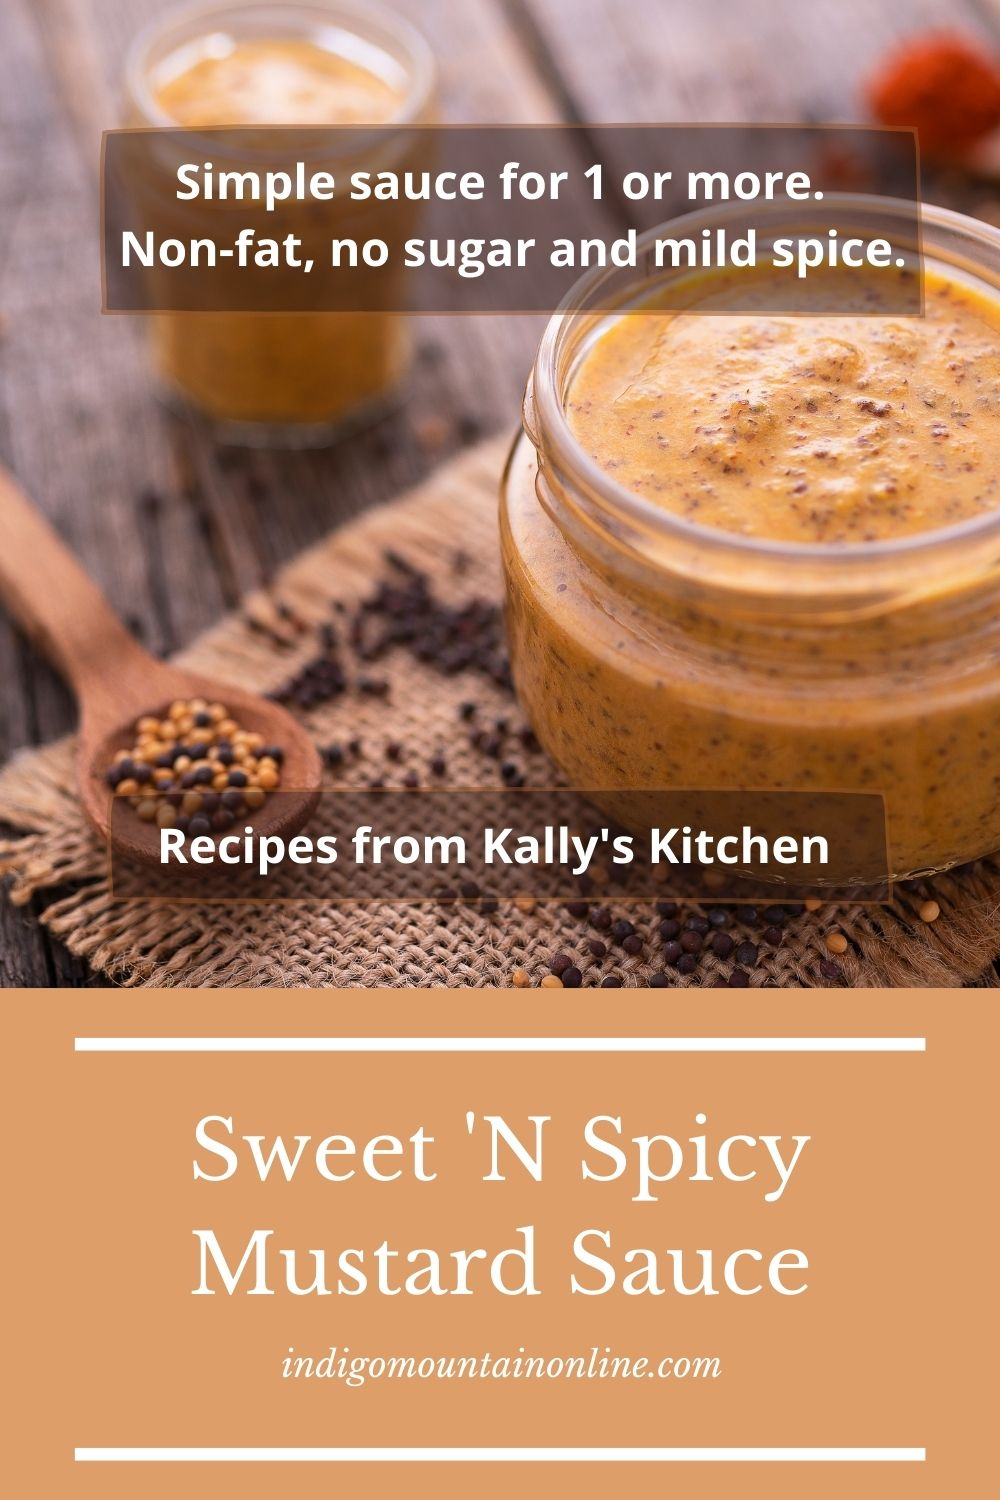 Pin image for a Sweet 'n spicy mustard sauce